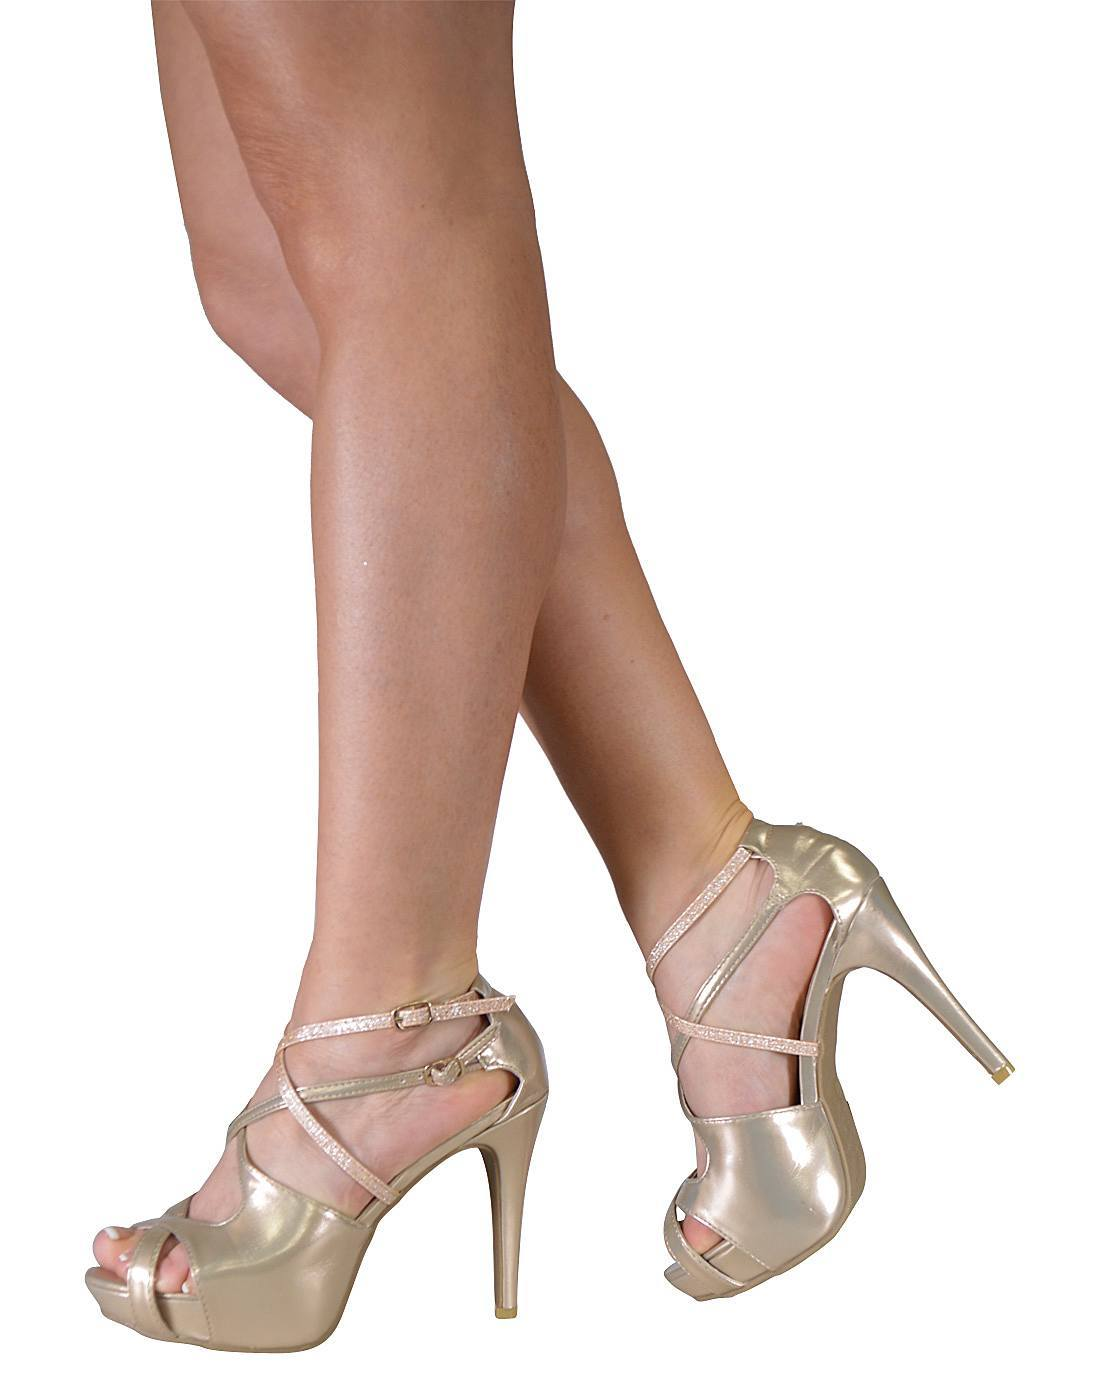 Strappy Peep Toe Ankle Strap Cuff Stiletto with Double Buckle Closure-id.31176b